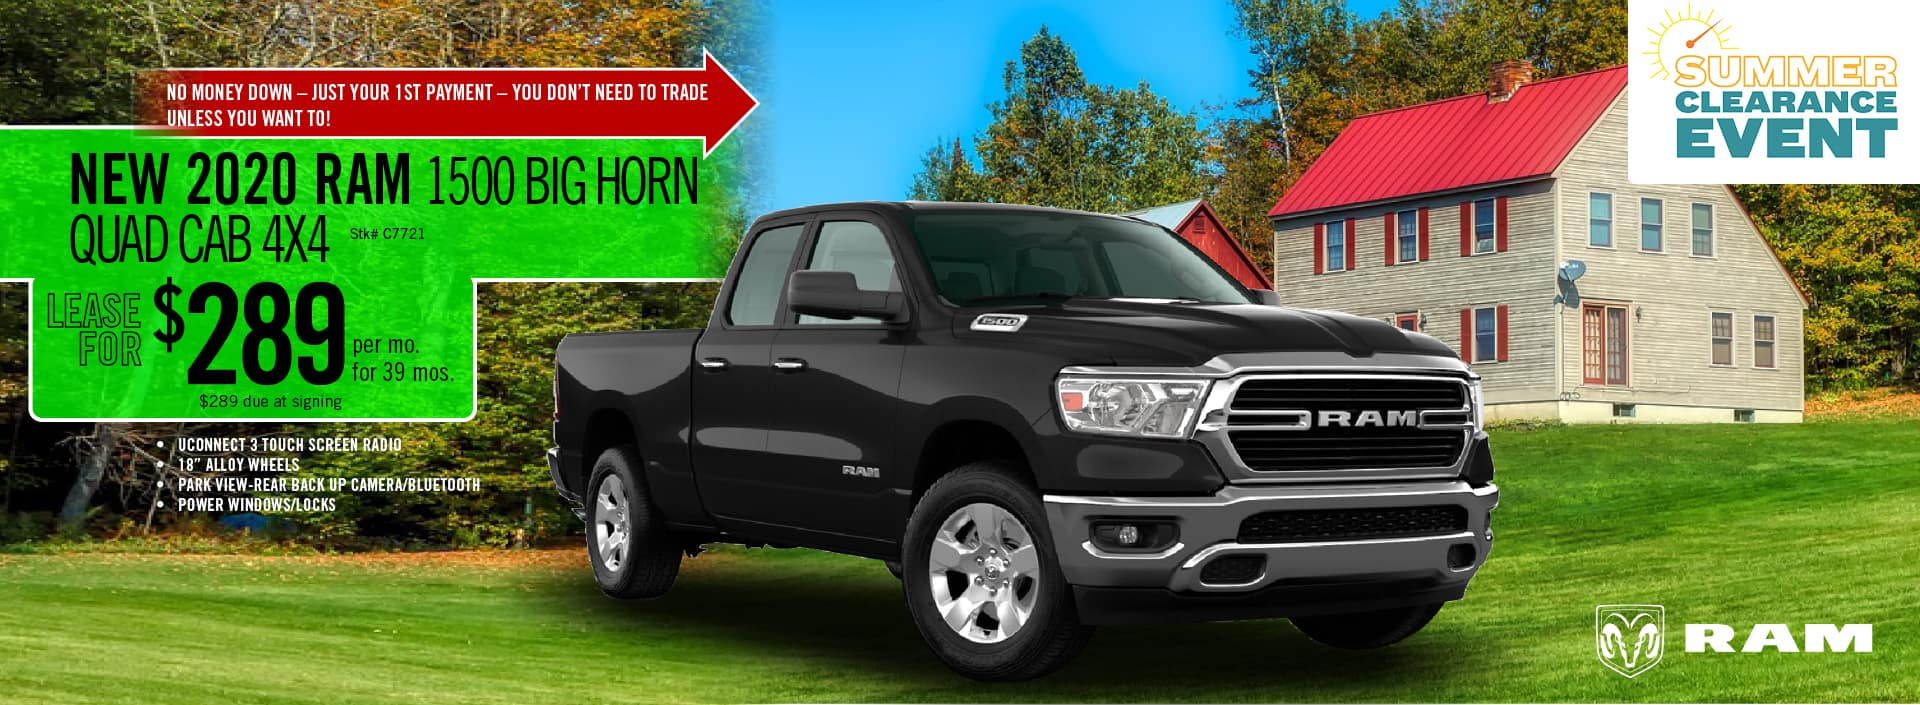 2020 RAM 1500 Big Horn Quad Cab lease deal $289 for 39 months | Barre, VT